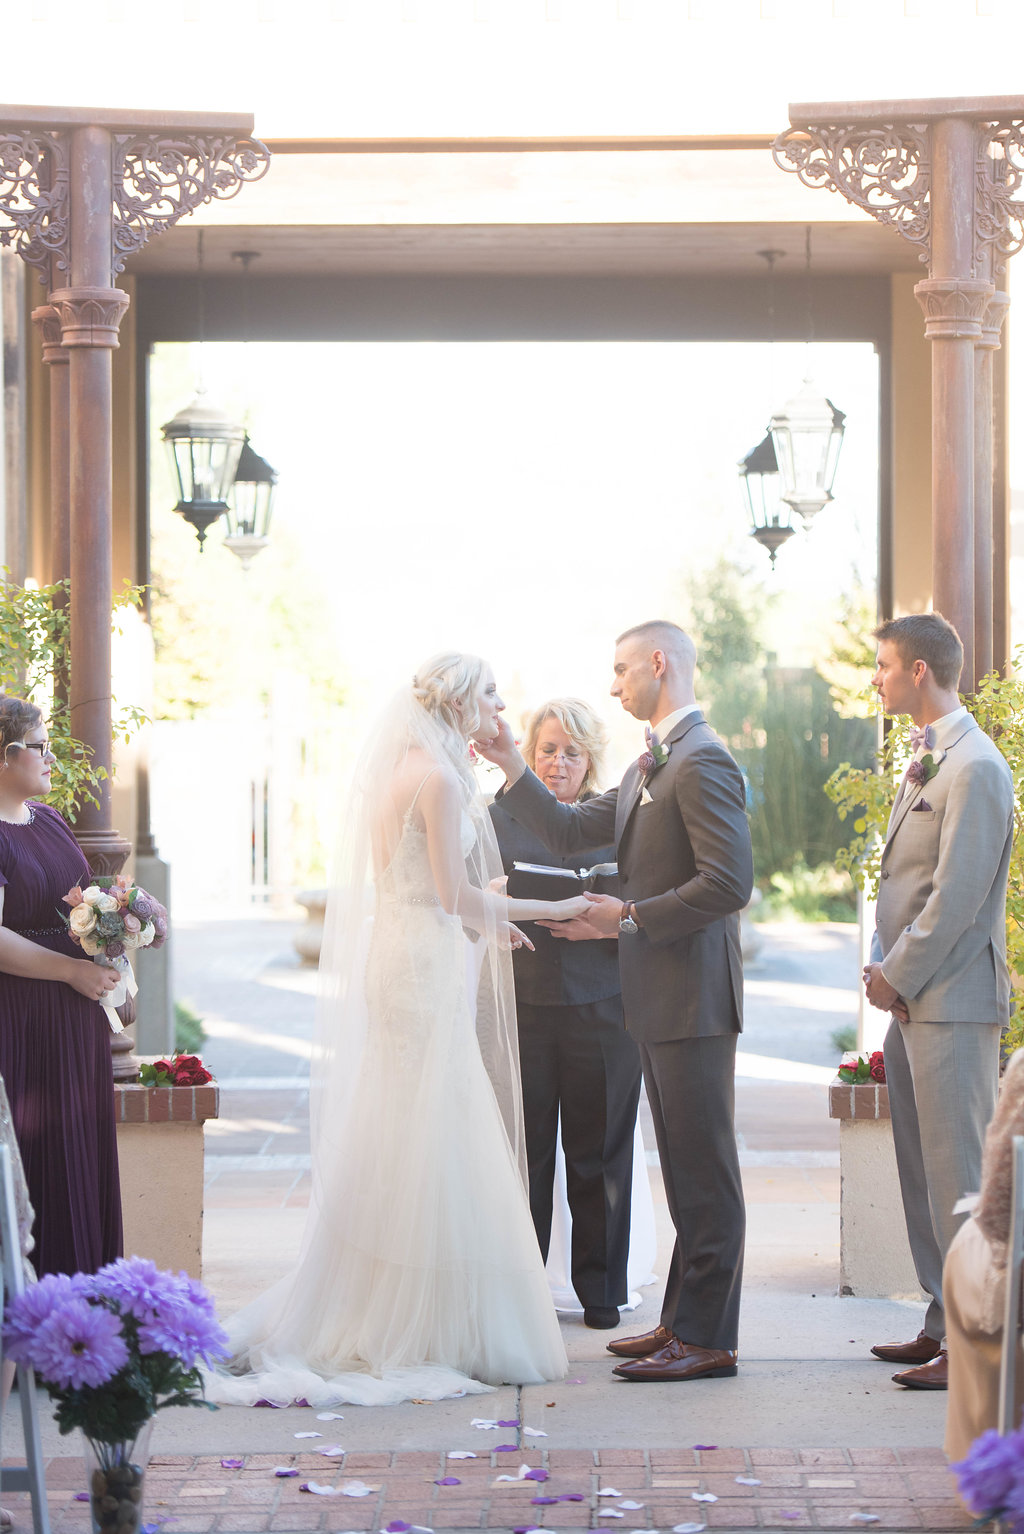 Perfect Wedding Guide New Mexico Albuquerque Santa Fe planning design inspo inspiration photography local marriage love engagement ceremony wedding